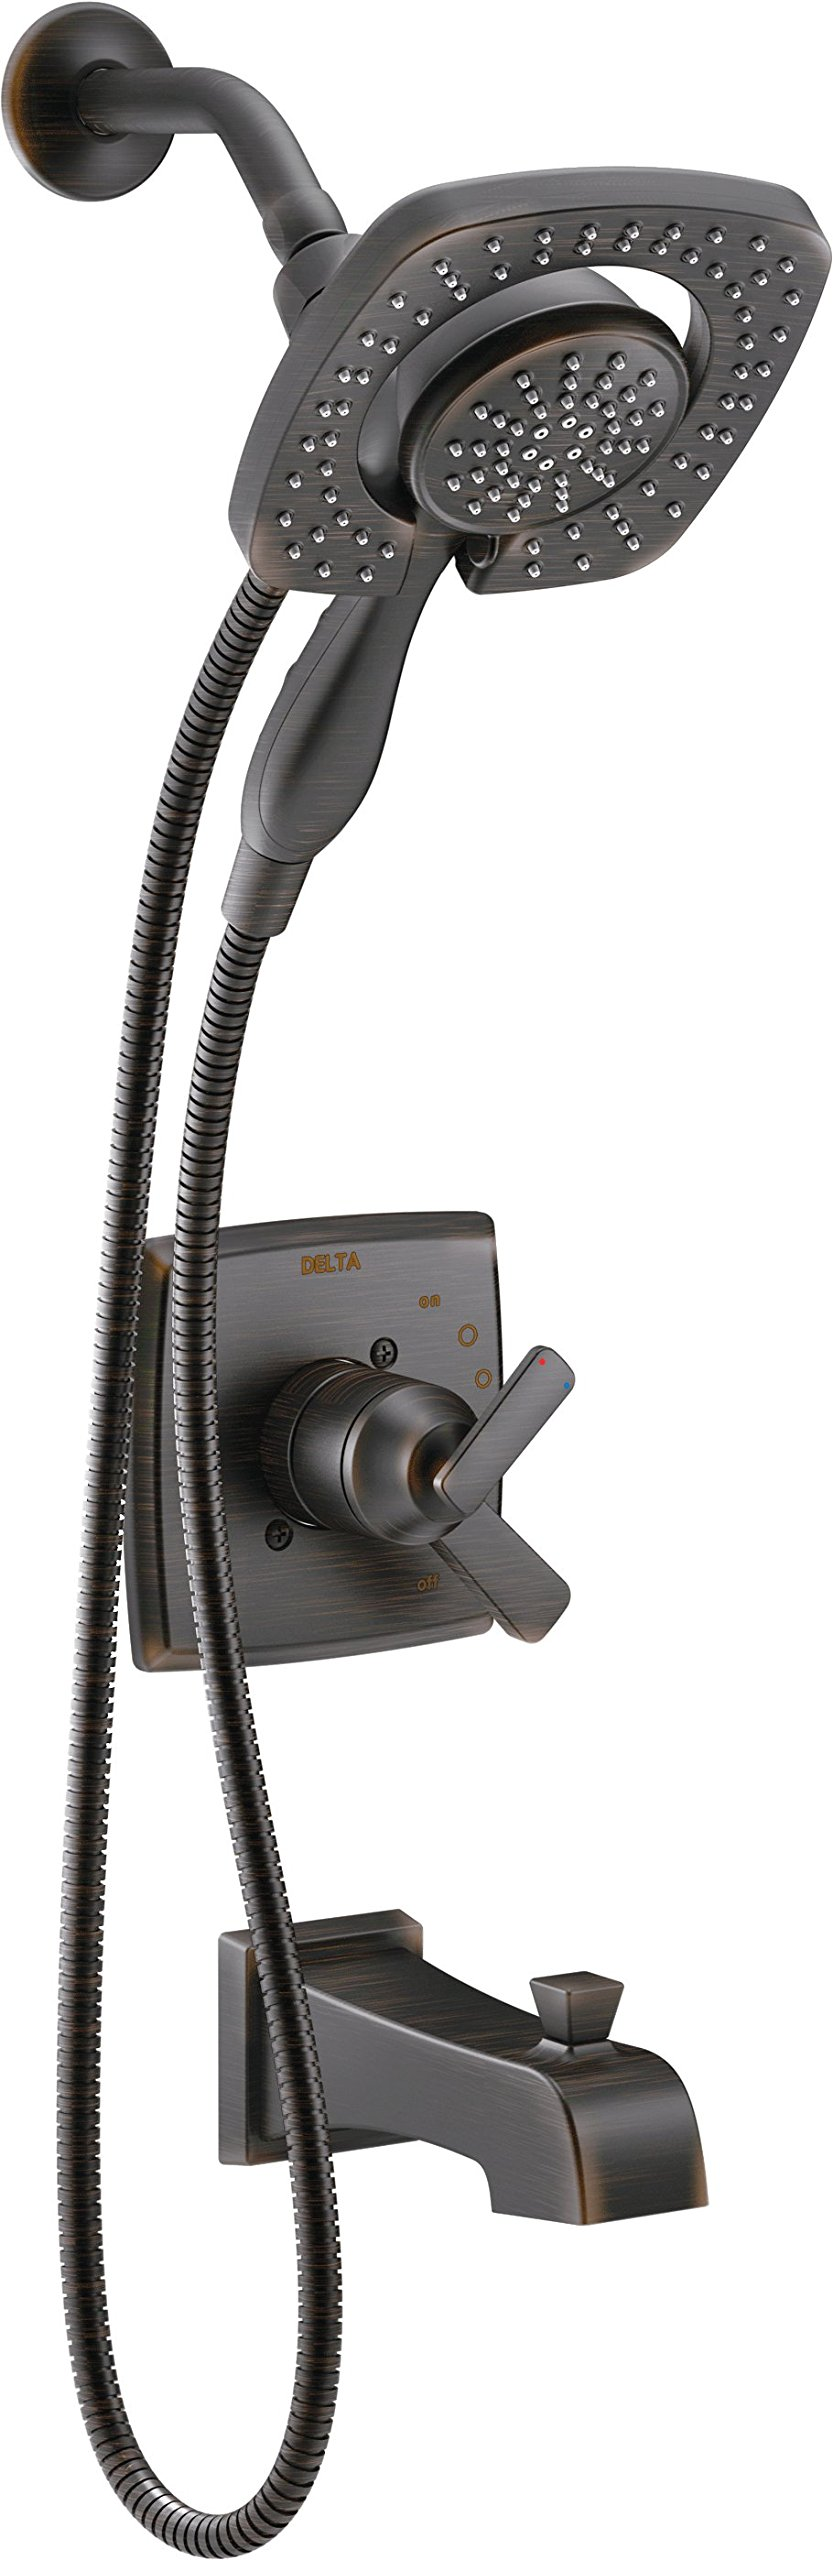 Delta T17464-RB-I Ashlyn Monitor 17 Series Tub & Shower Trim with In2ition Two-in-One Handshower Showerhead, Venetian Bronze by DELTA FAUCET